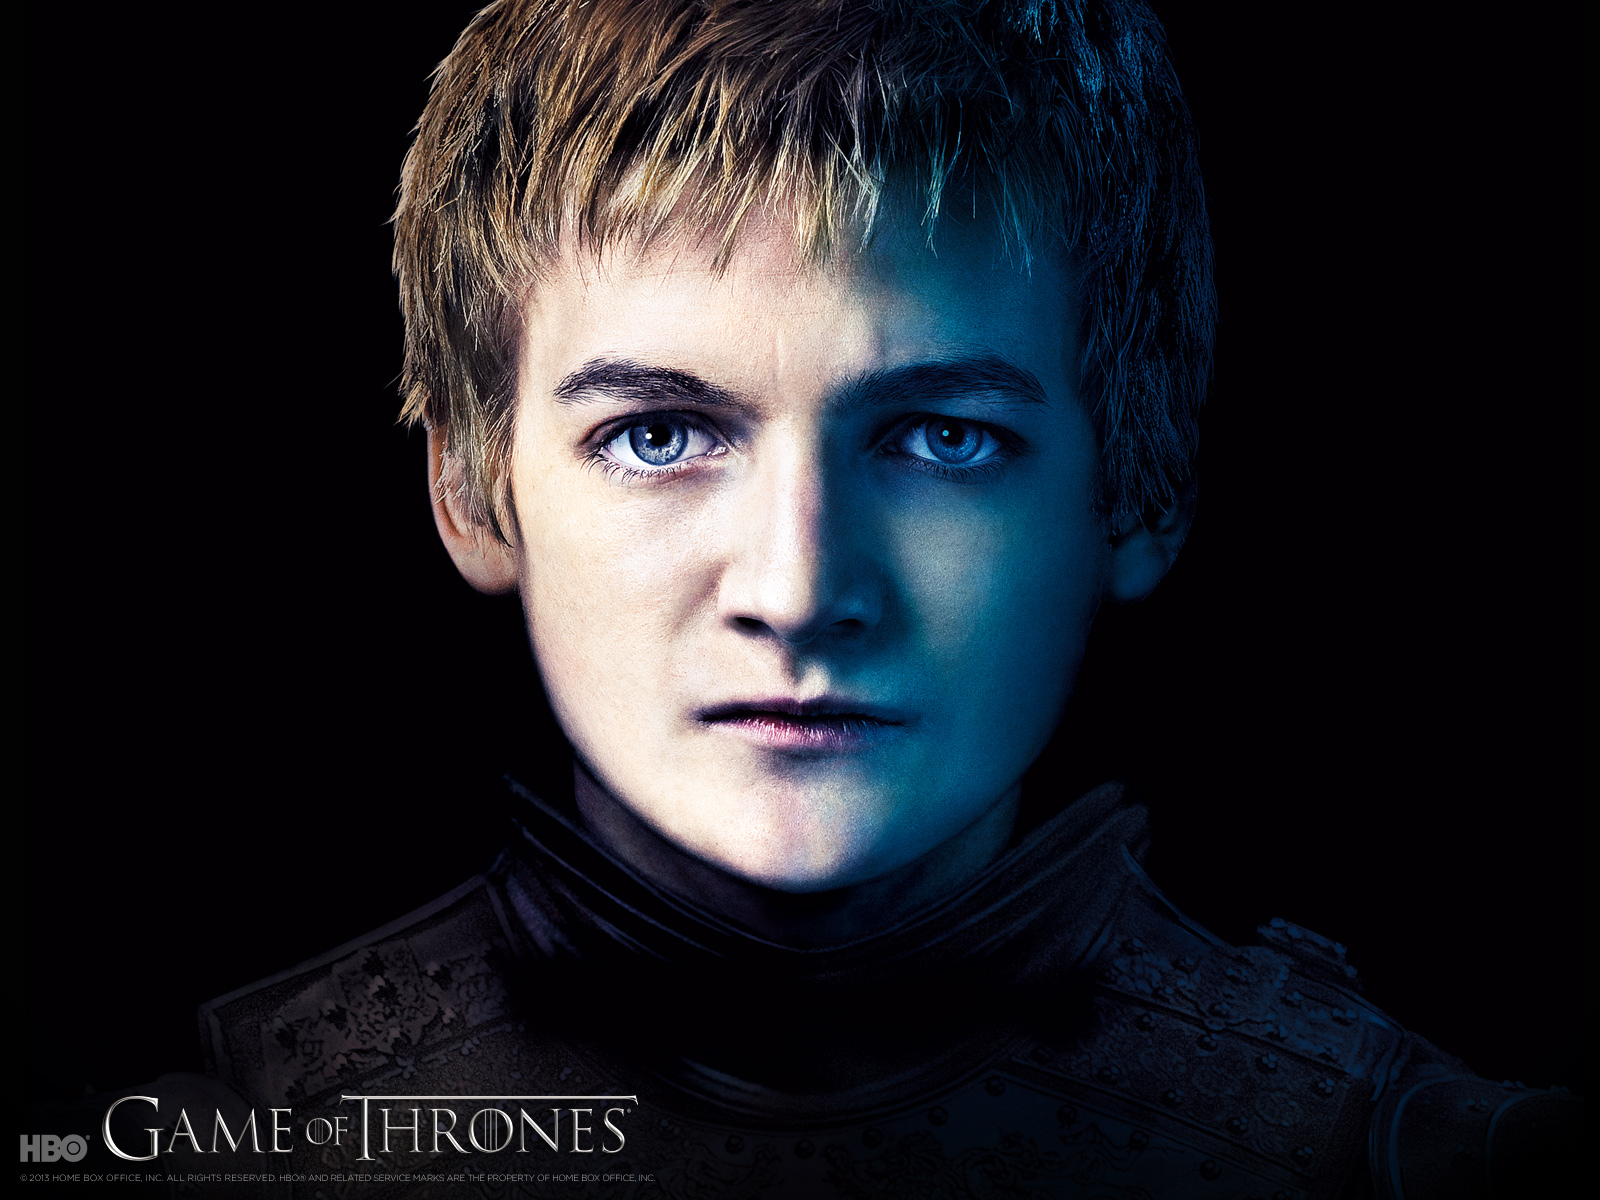 Joffrey Baratheon - Game of Thrones Wallpaper (33779416 ...